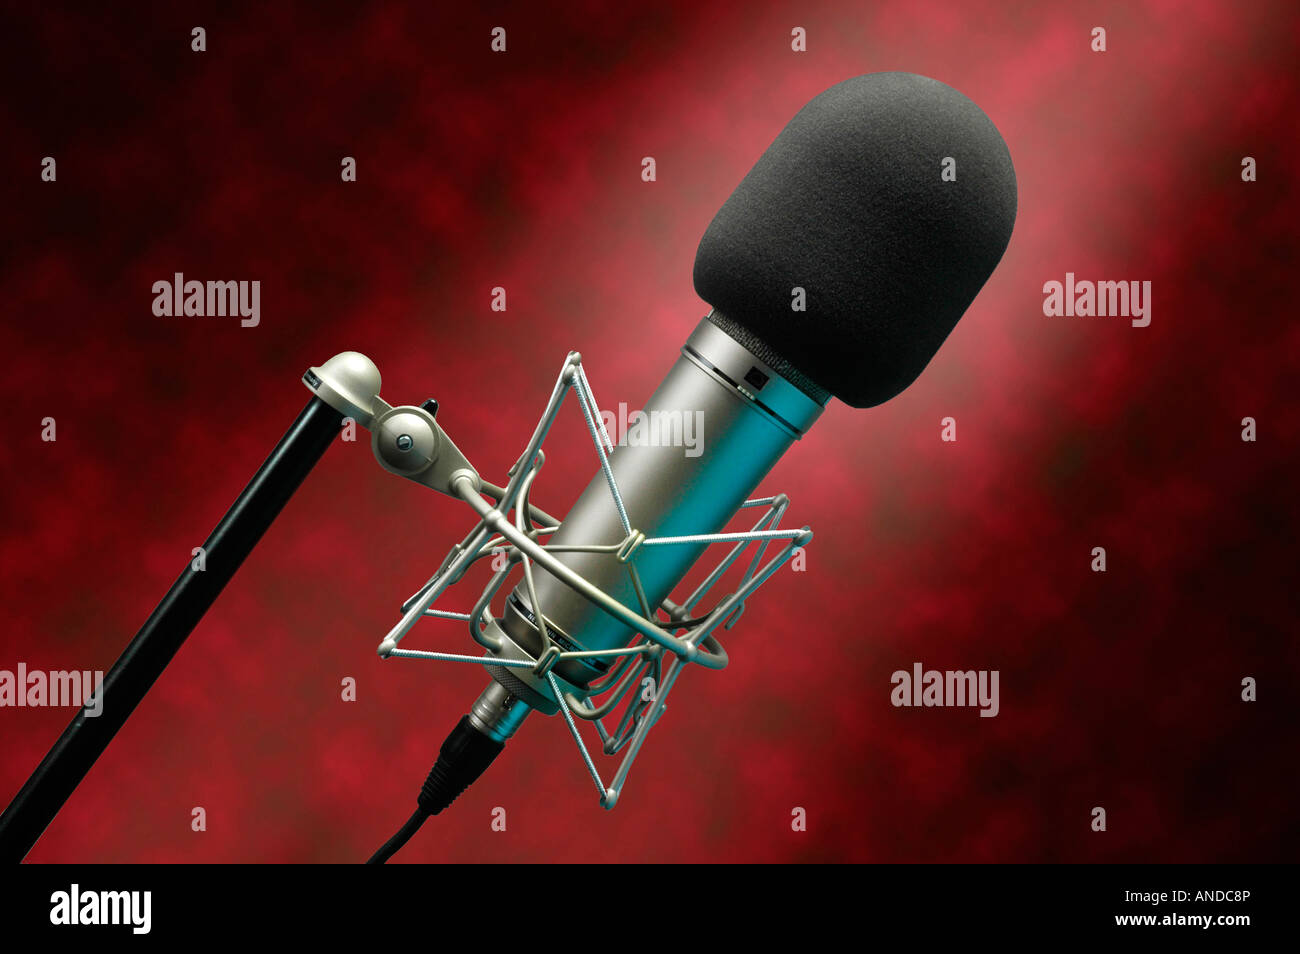 Professional studio microphone for voice or music recording against a red mottled background - Stock Image